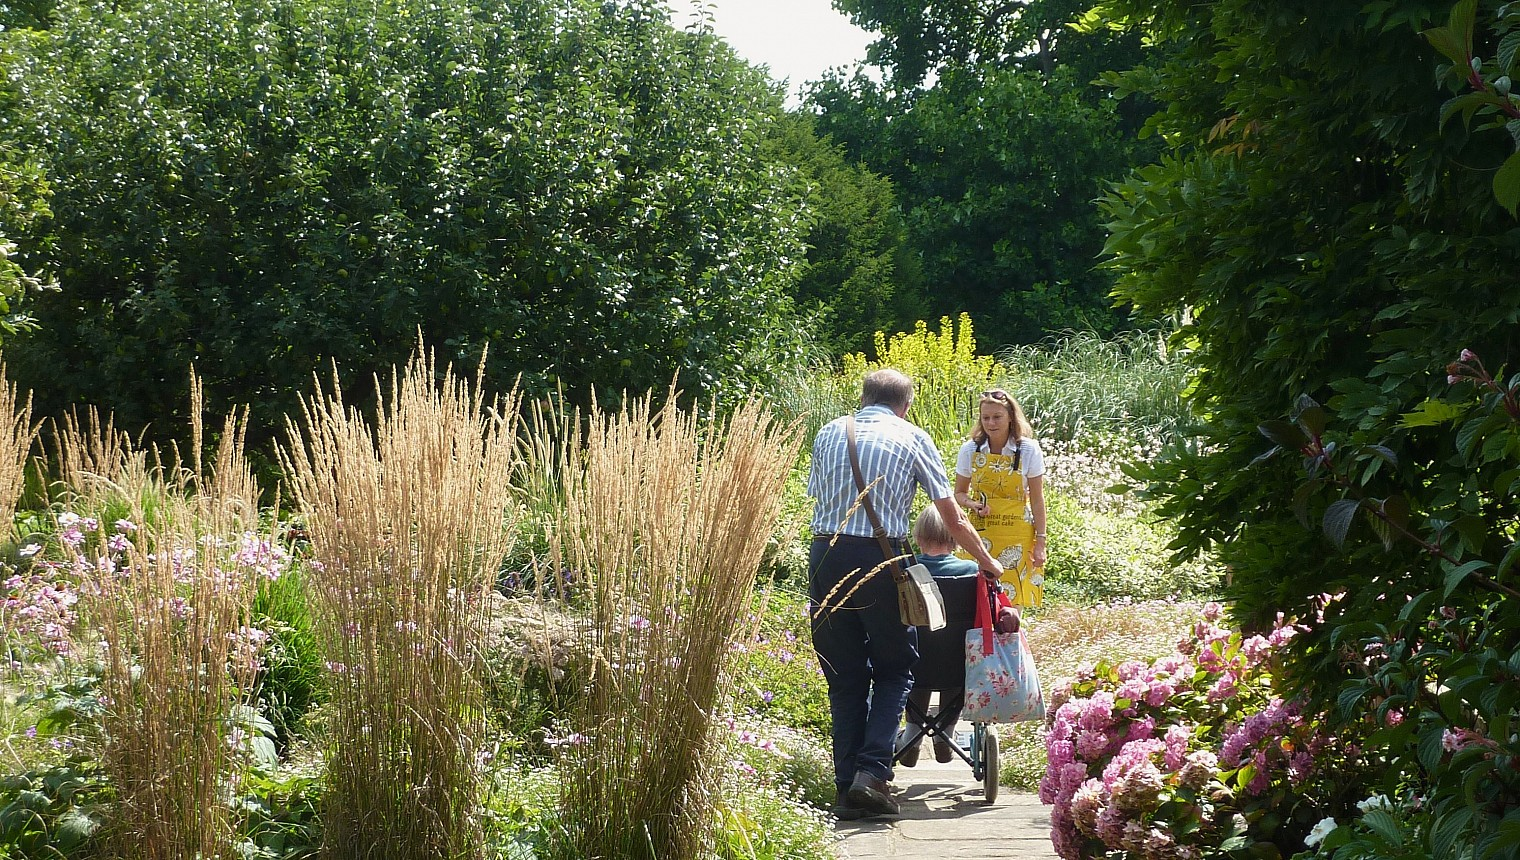 NGS Gardens And Health Week – 18-24 August 2018